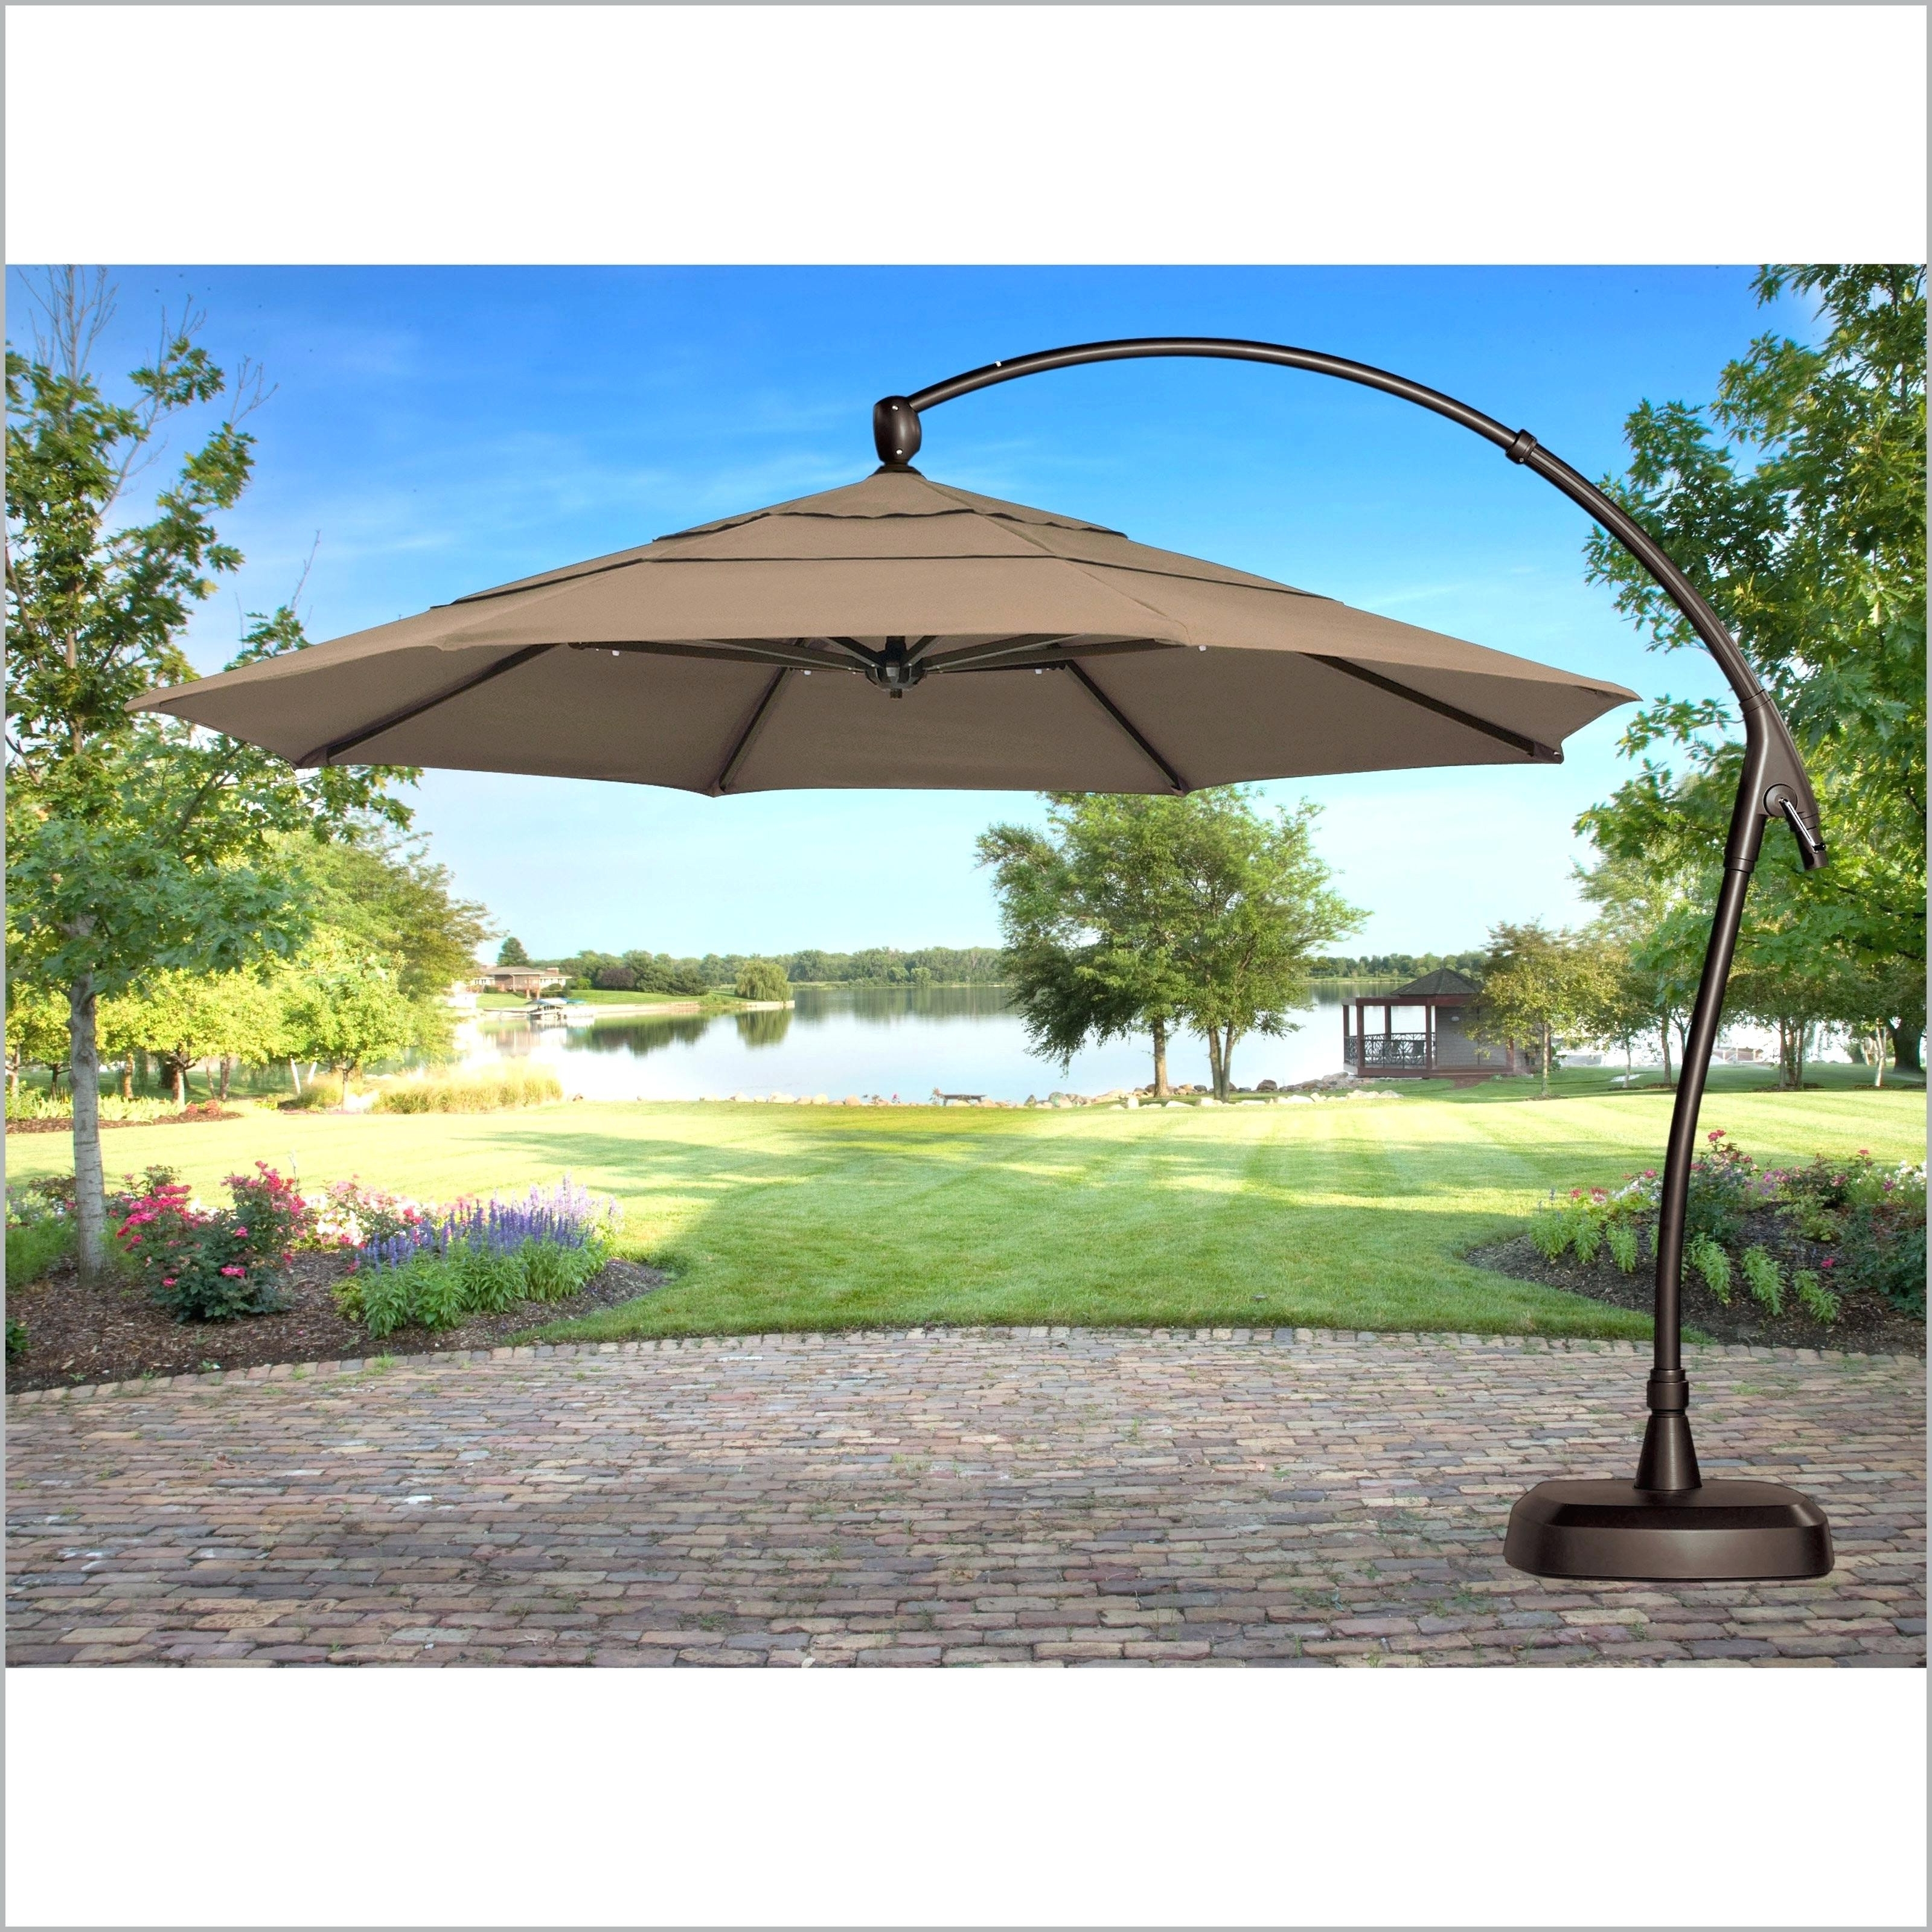 Current Lowes Umbrella Base Patio Umbrellas With Lights Table Pics – Mrze Within Patio Umbrellas At Lowes (View 8 of 20)